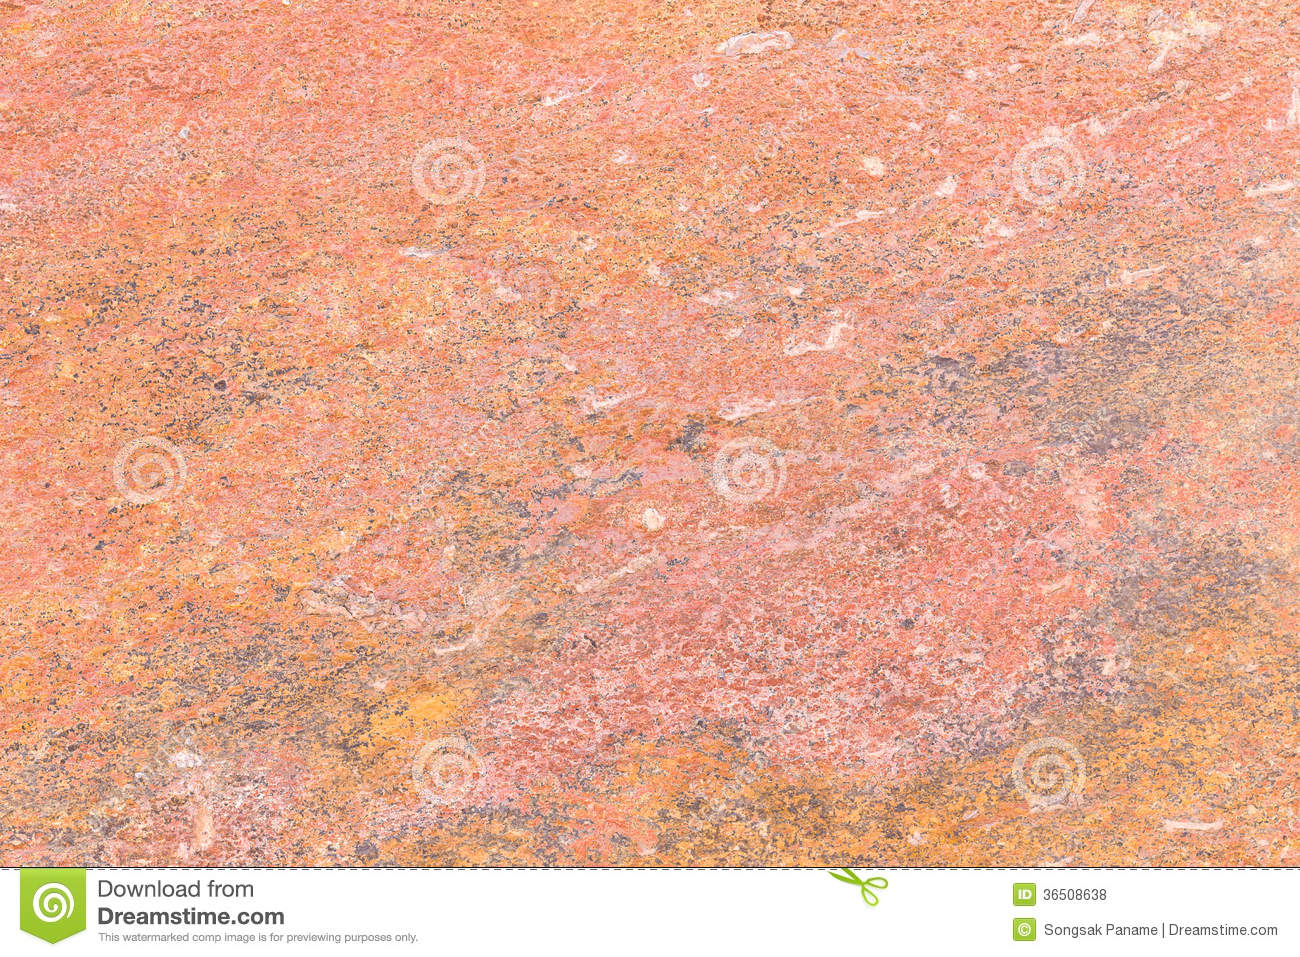 Red Stone Texture : Texture of red stone royalty free stock photos image